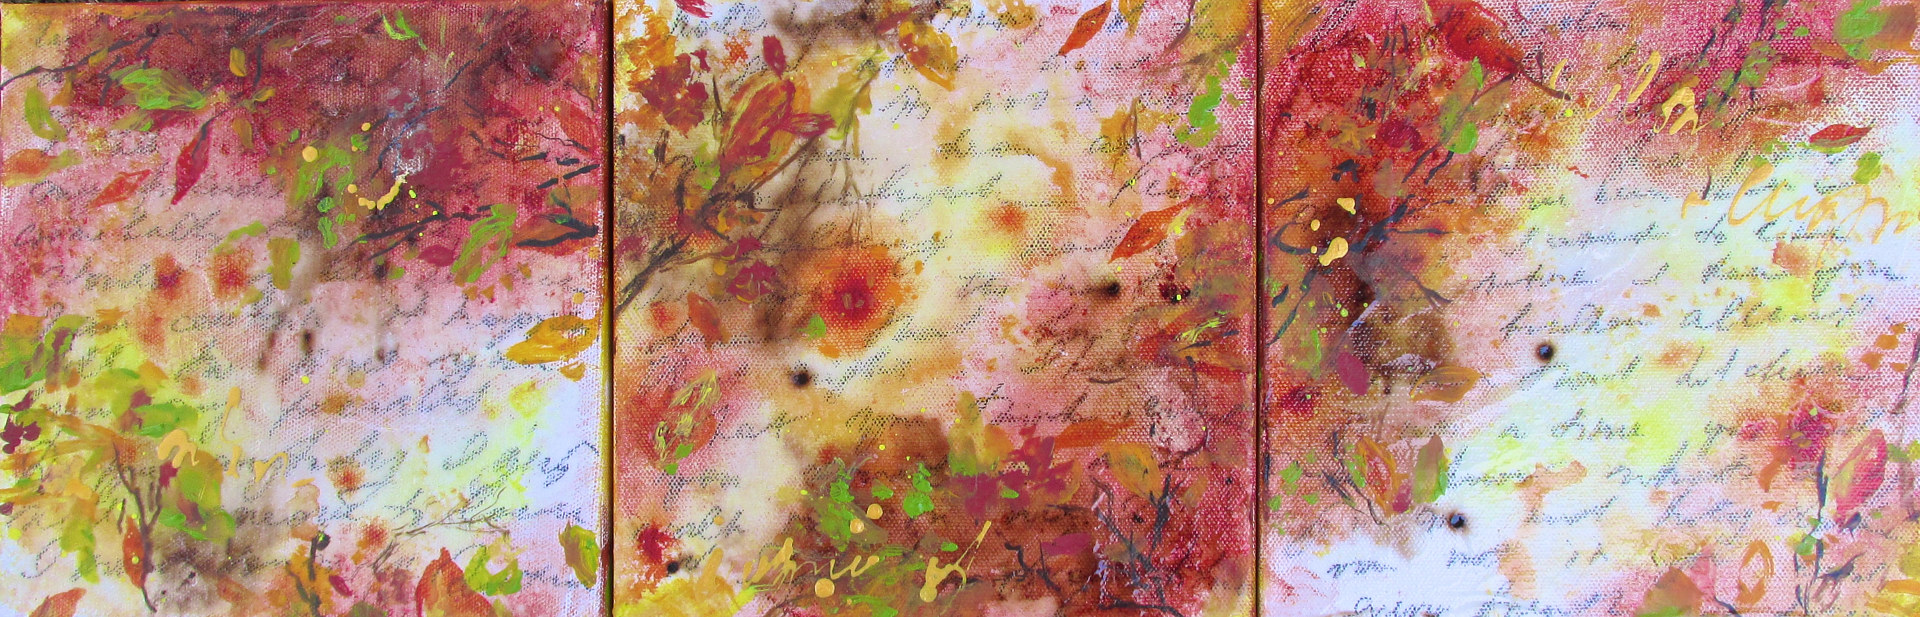 Acrylic painting Autumn Poetry by Laura Spring